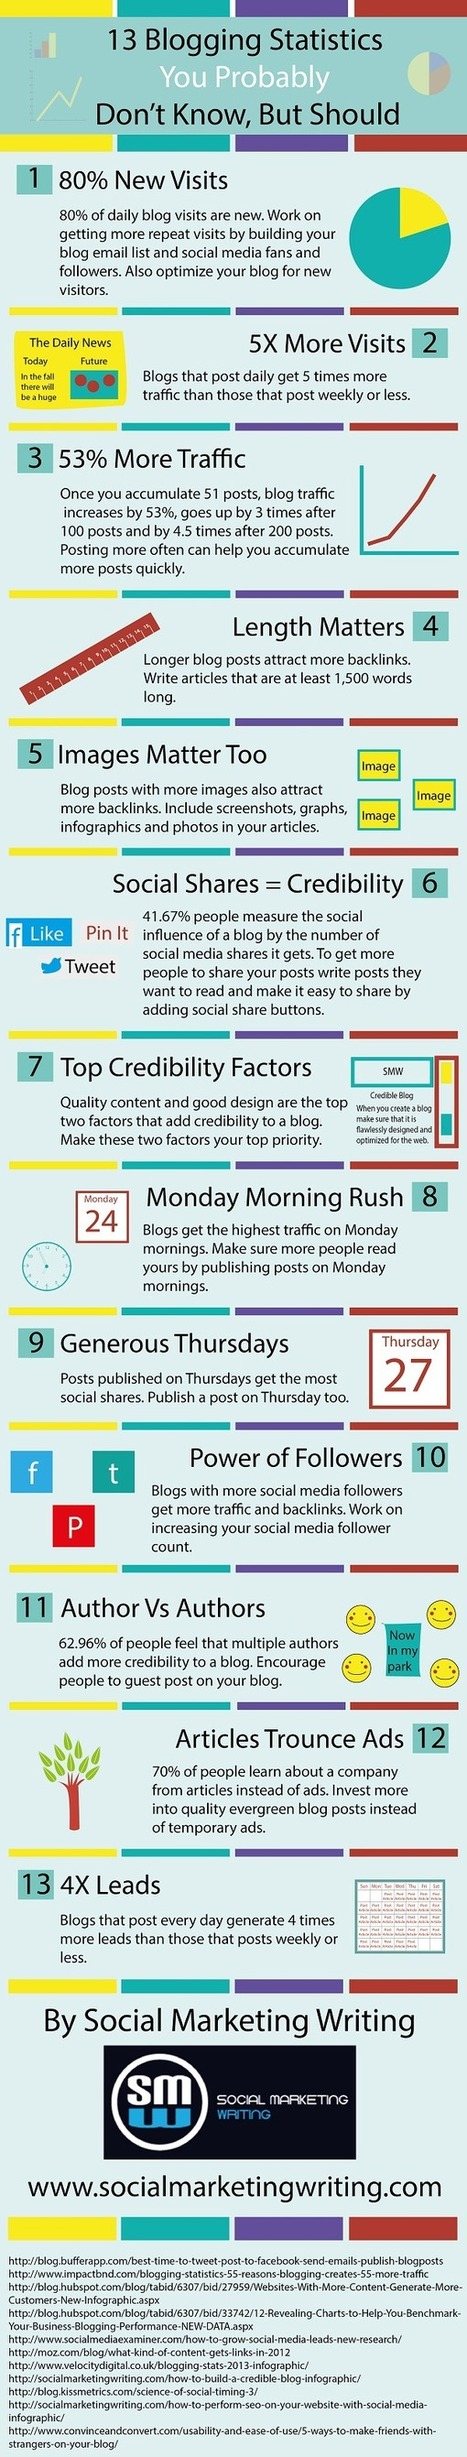 13 Blogging Statistics You Probably Don't Know, But Should [Infographic] | digital marketing strategy | Scoop.it